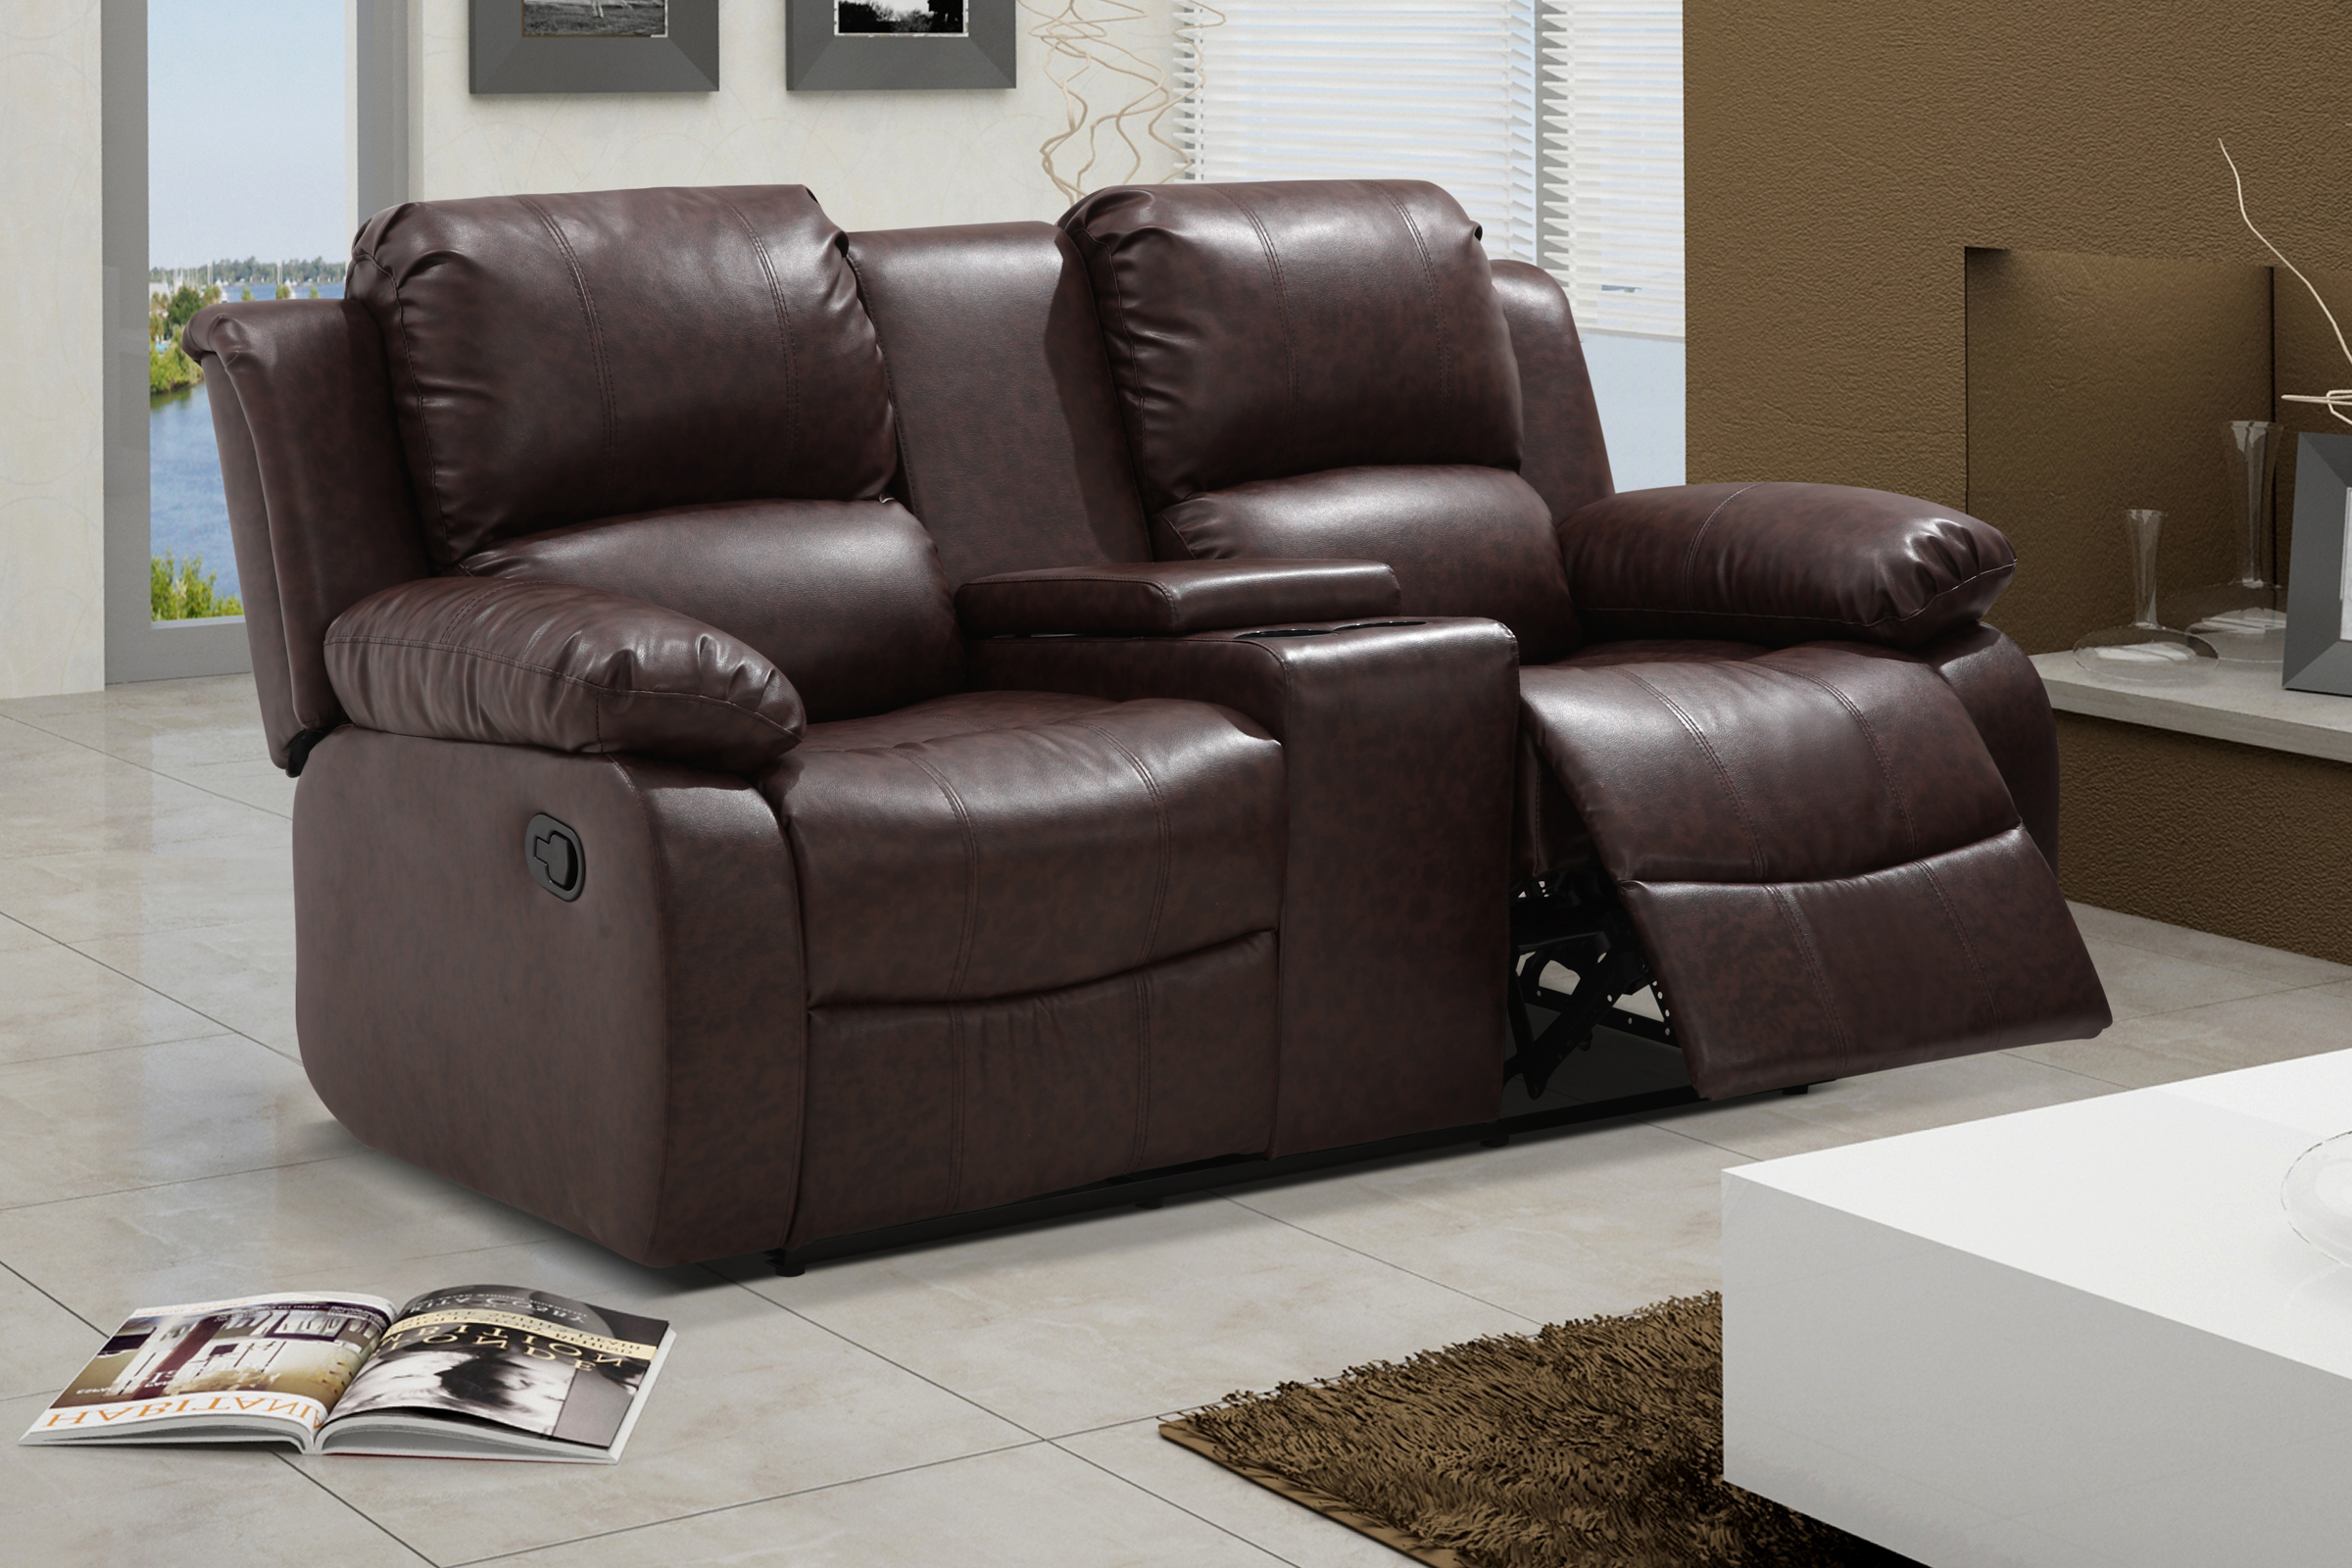 UFE Zoey Bonded Leather Reclining Loveseat with Center Console